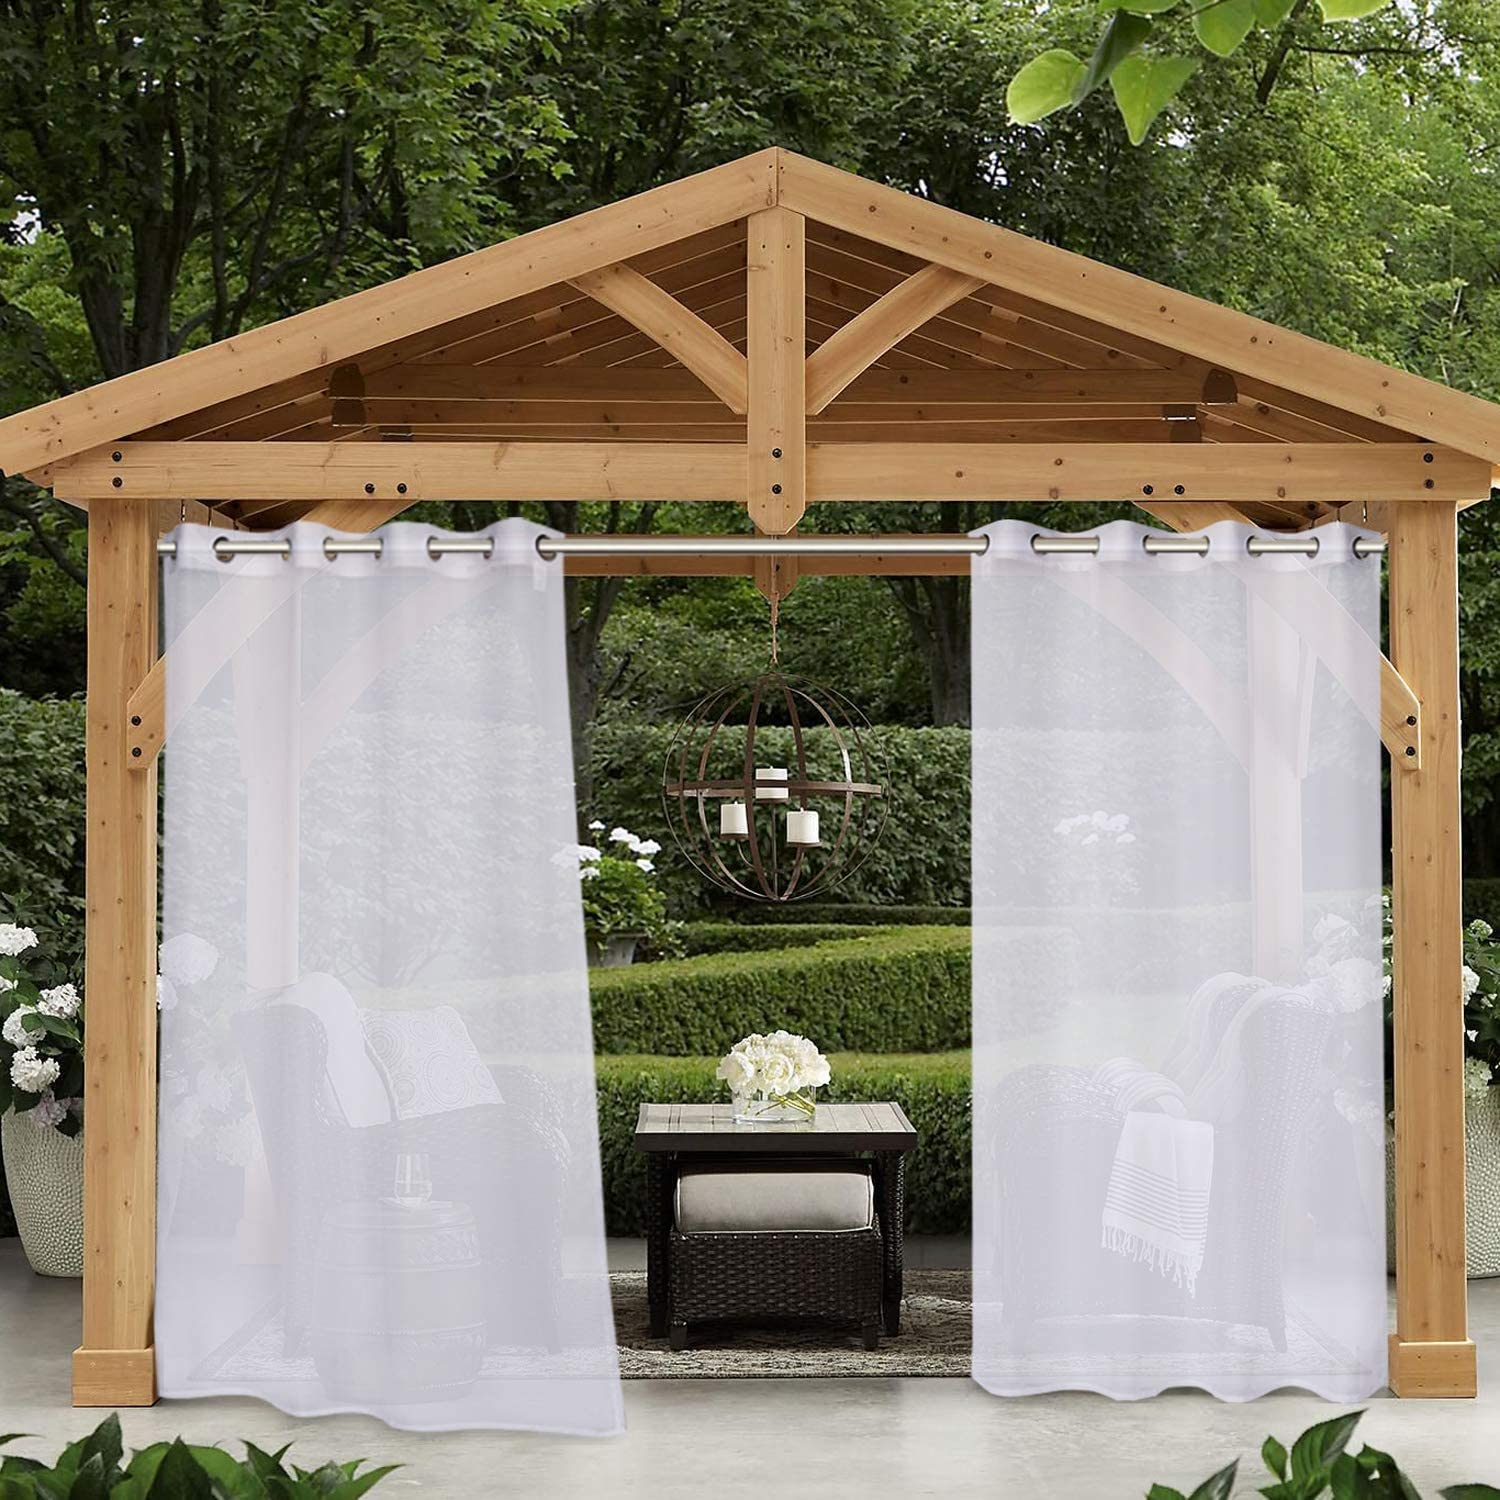 LUSHLEAF Cash special price Indoor Outdoor Sheer Sales results No. 1 Curtains Whi Waterproof Patio for